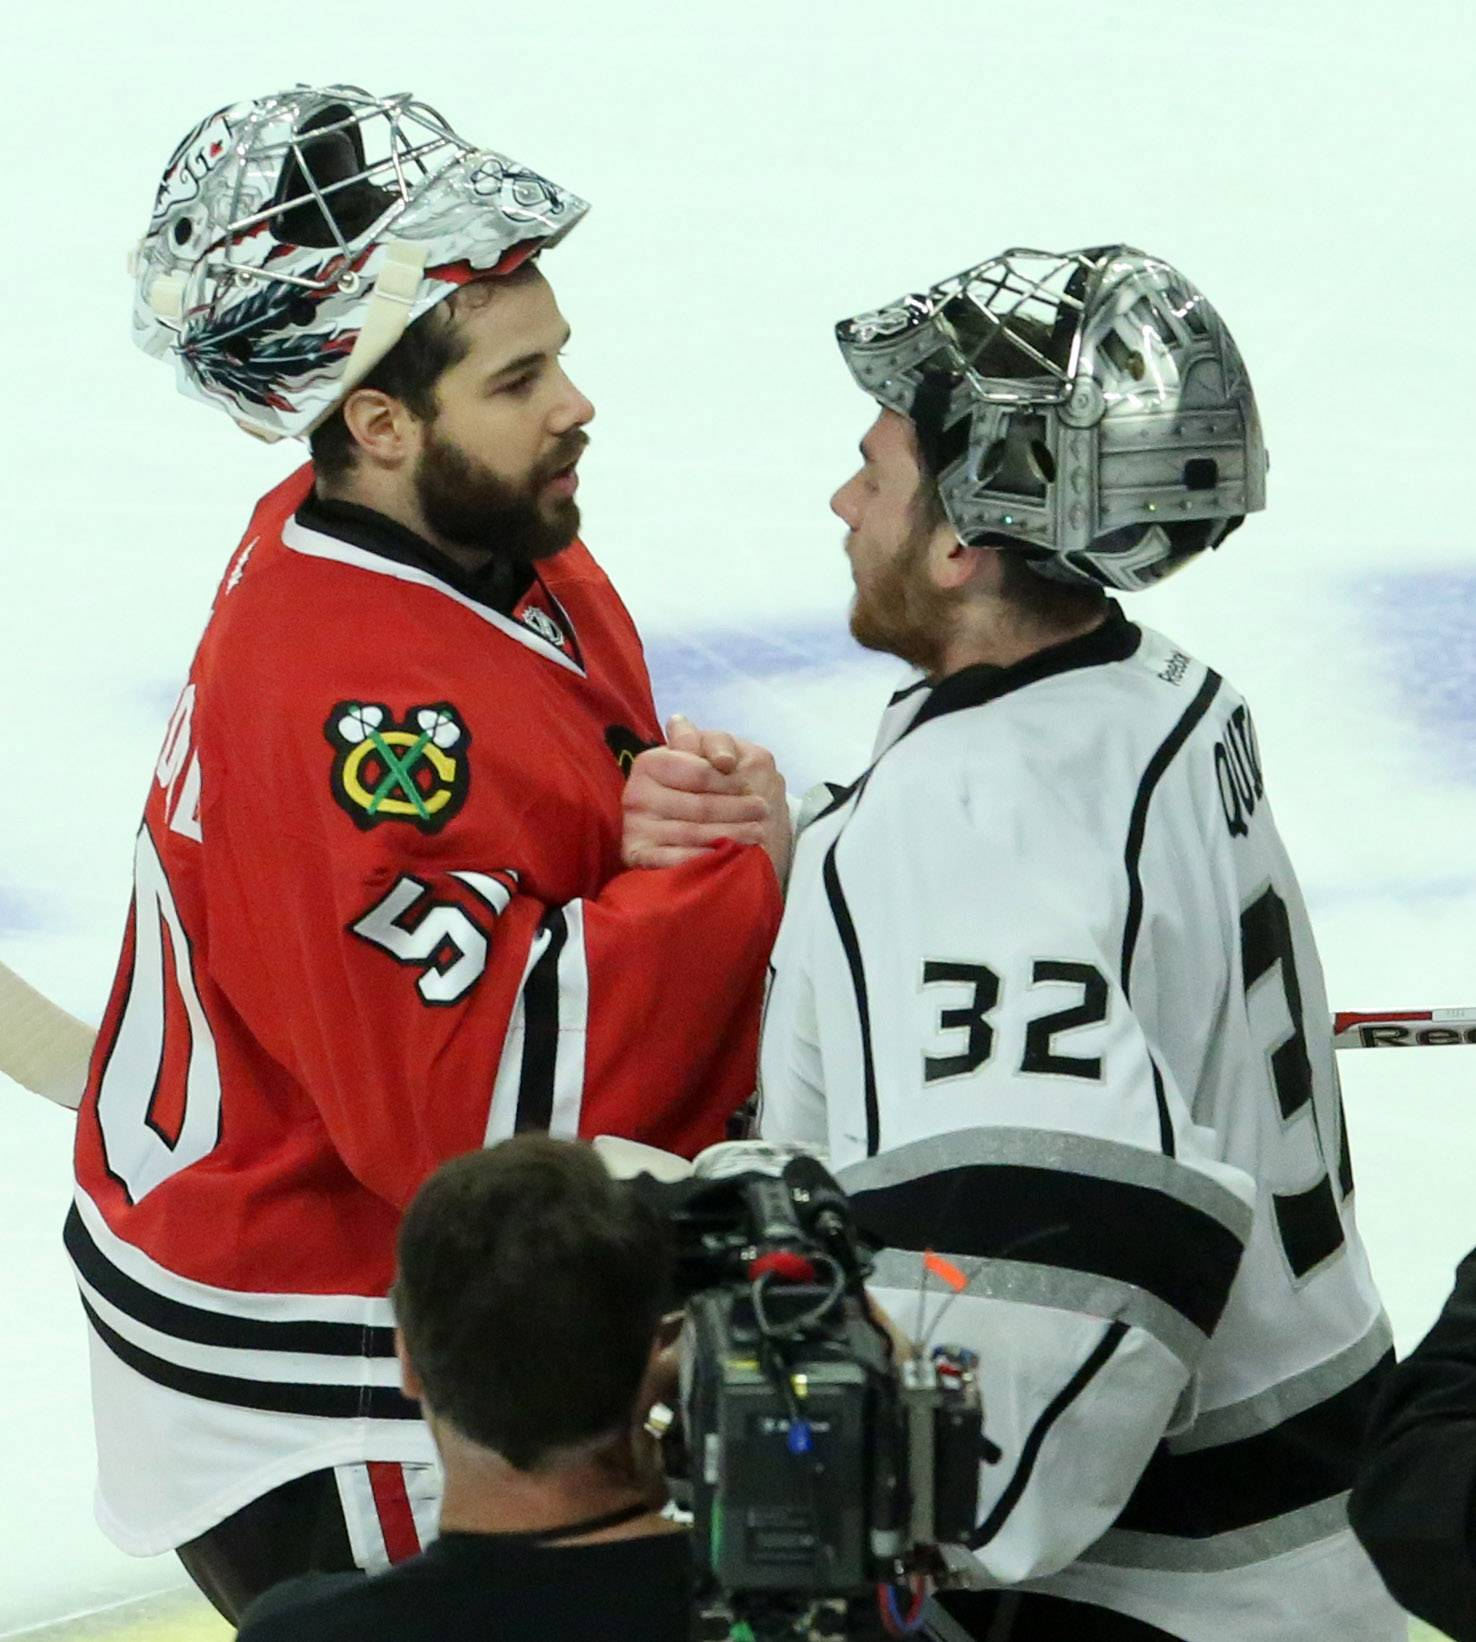 While Blackhawks goalie Corey Crawford won't get to defend the Stanley Cup he helped to win last season, Jonathan Quick will try to help the L.A. Kings win their second title in three years.